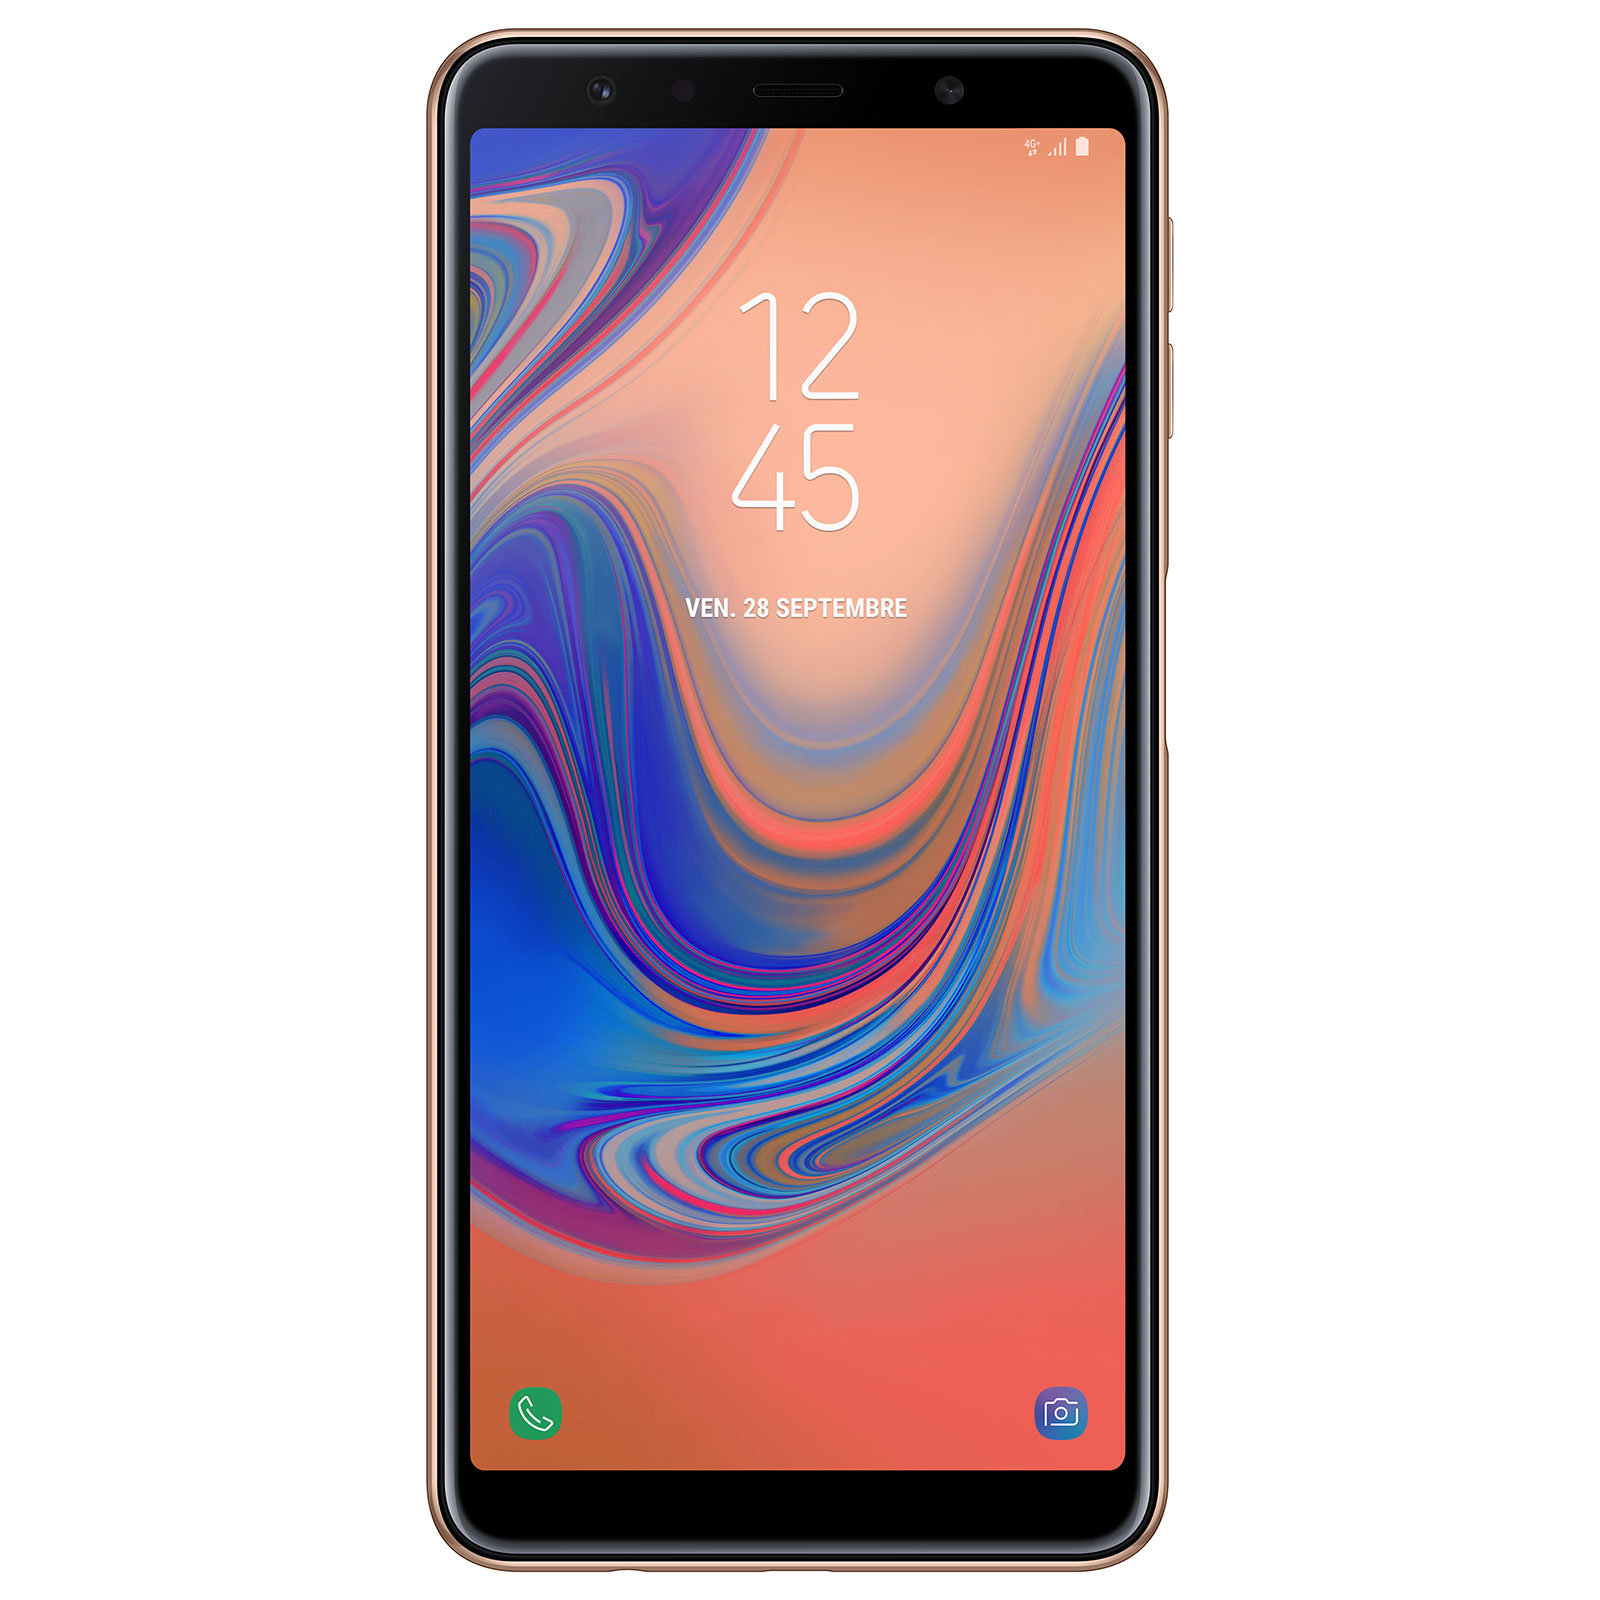 """Mobile & smartphone Samsung Galaxy A7 2018 Or Smartphone 4G-LTE Advanced Dual SIM - Exynos 7885 Octo-Core 2.2 Ghz - RAM 4 Go - Ecran tactile 6"""" 1080 x 2220 - 64 Go - NFC/Bluetooth 4.2 - 3300 mAh - Android 8.0"""